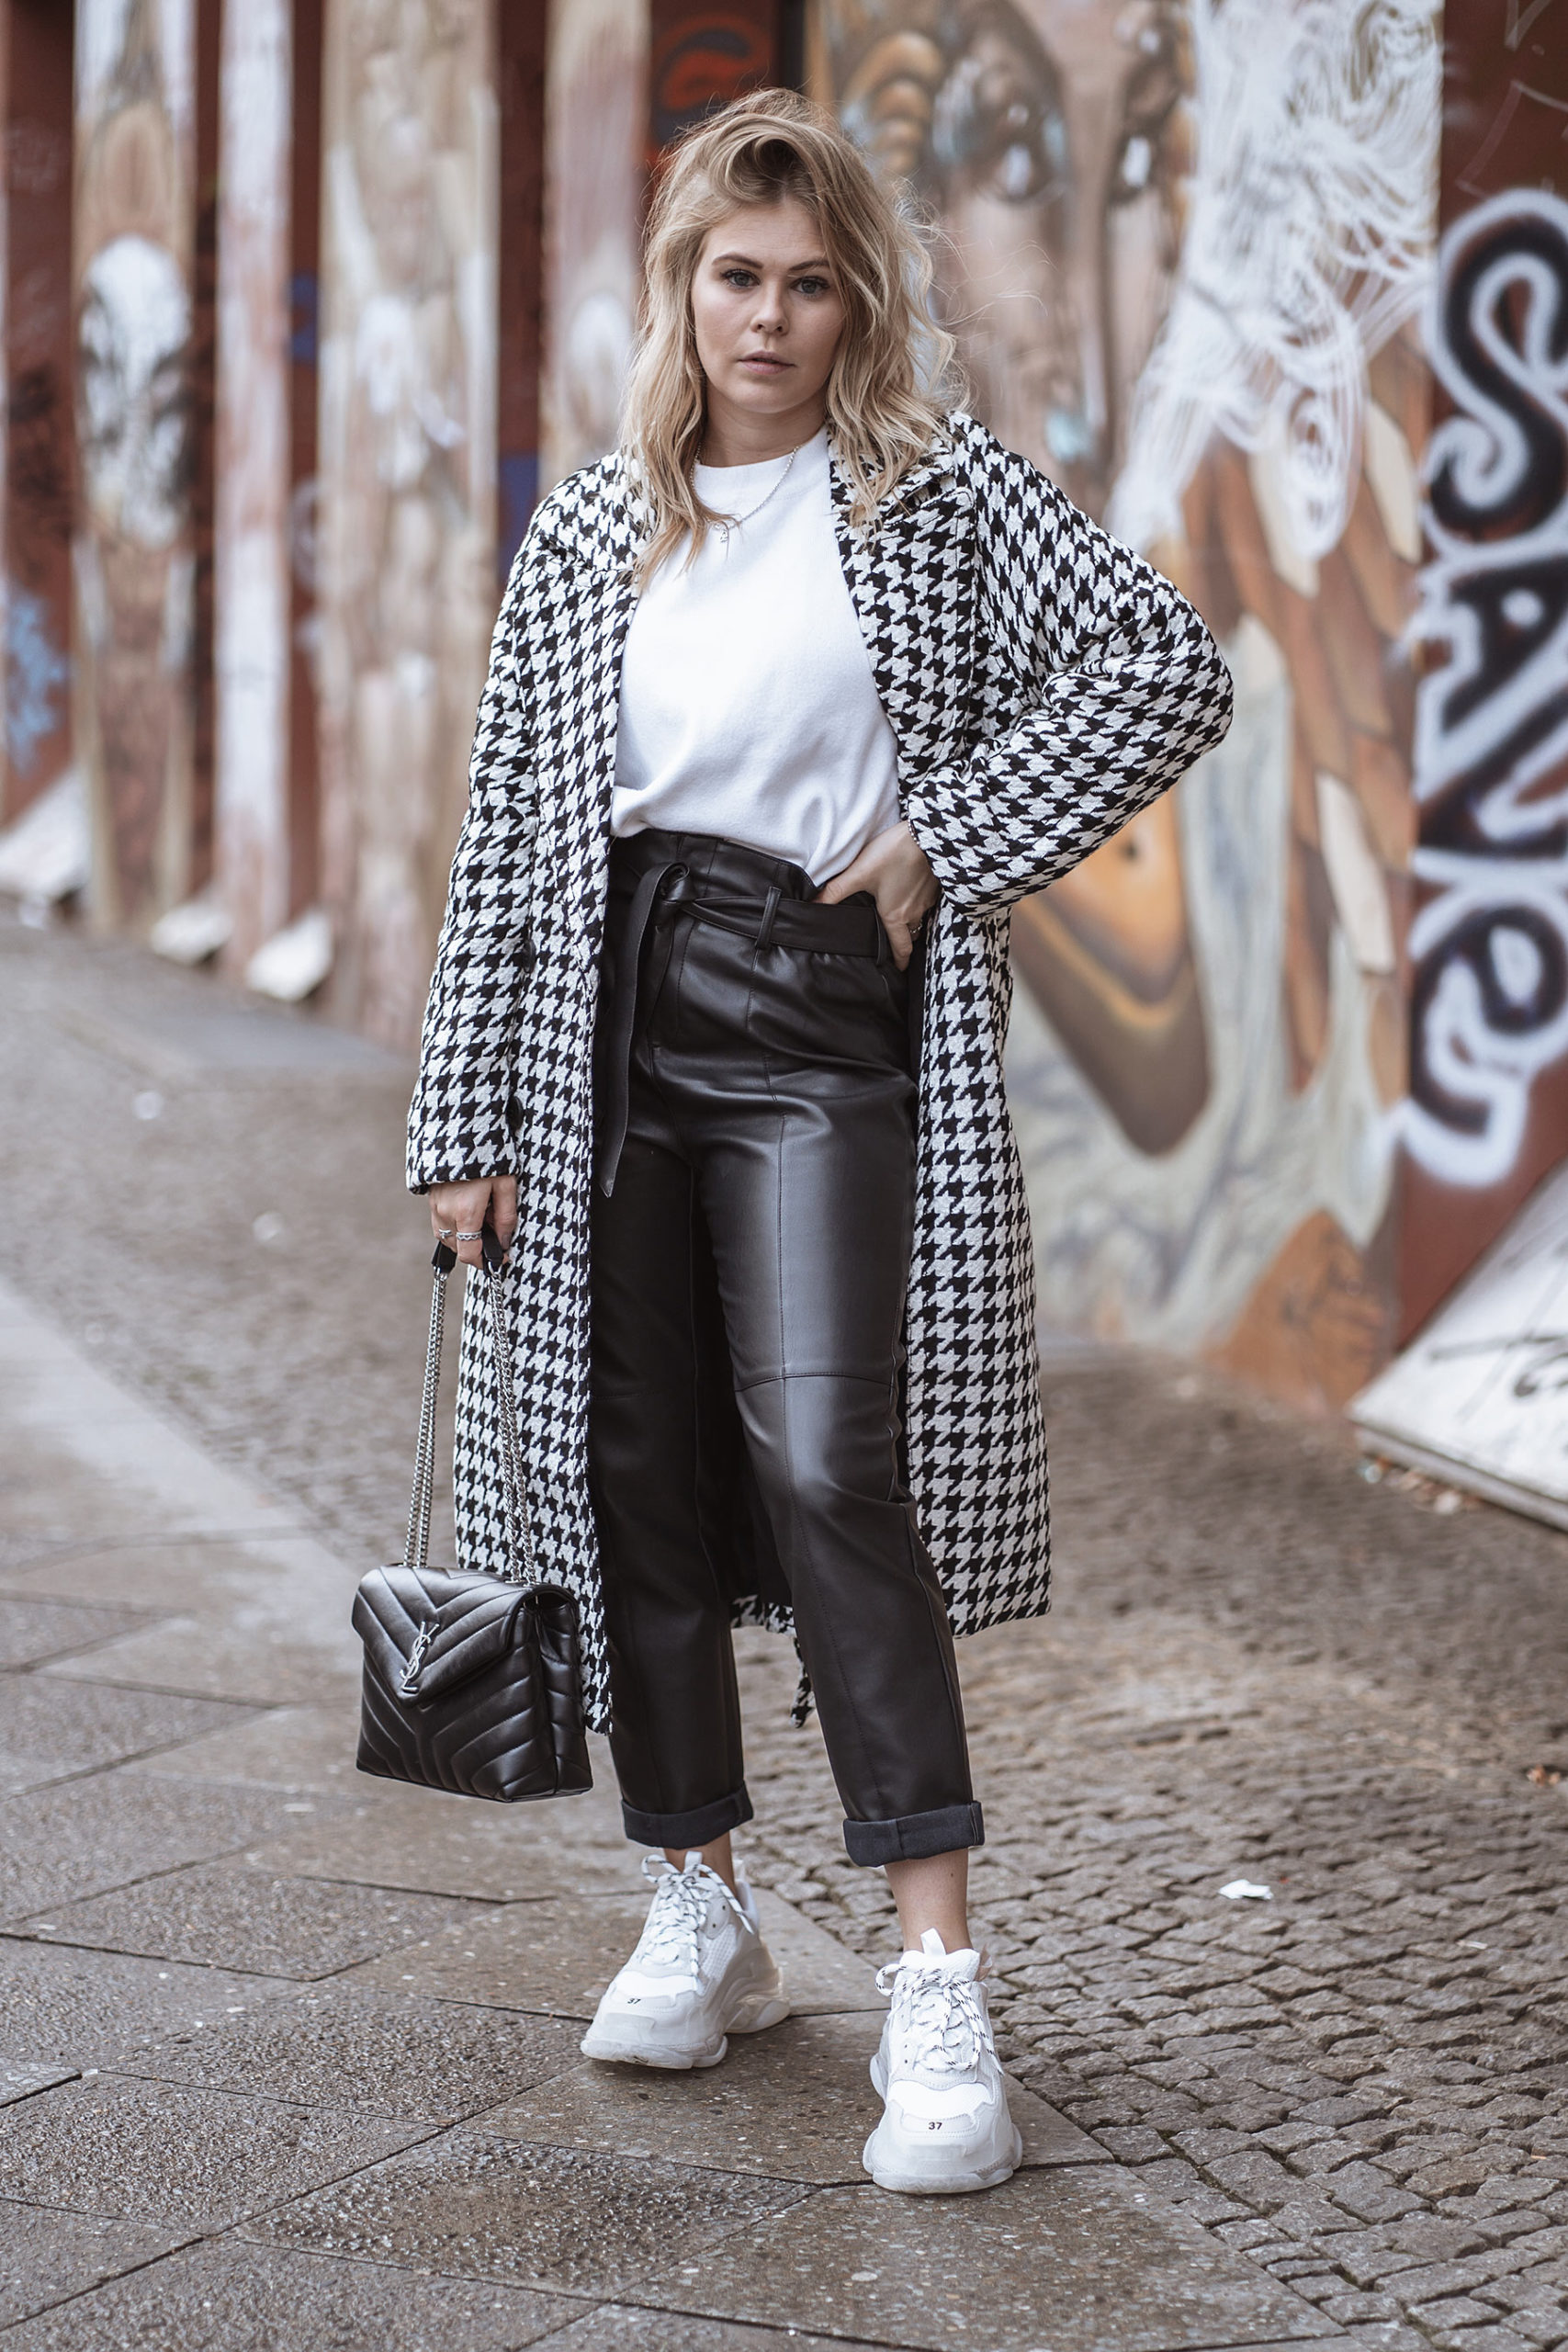 mantel hahnentrittmuster street style outfit inga brauer